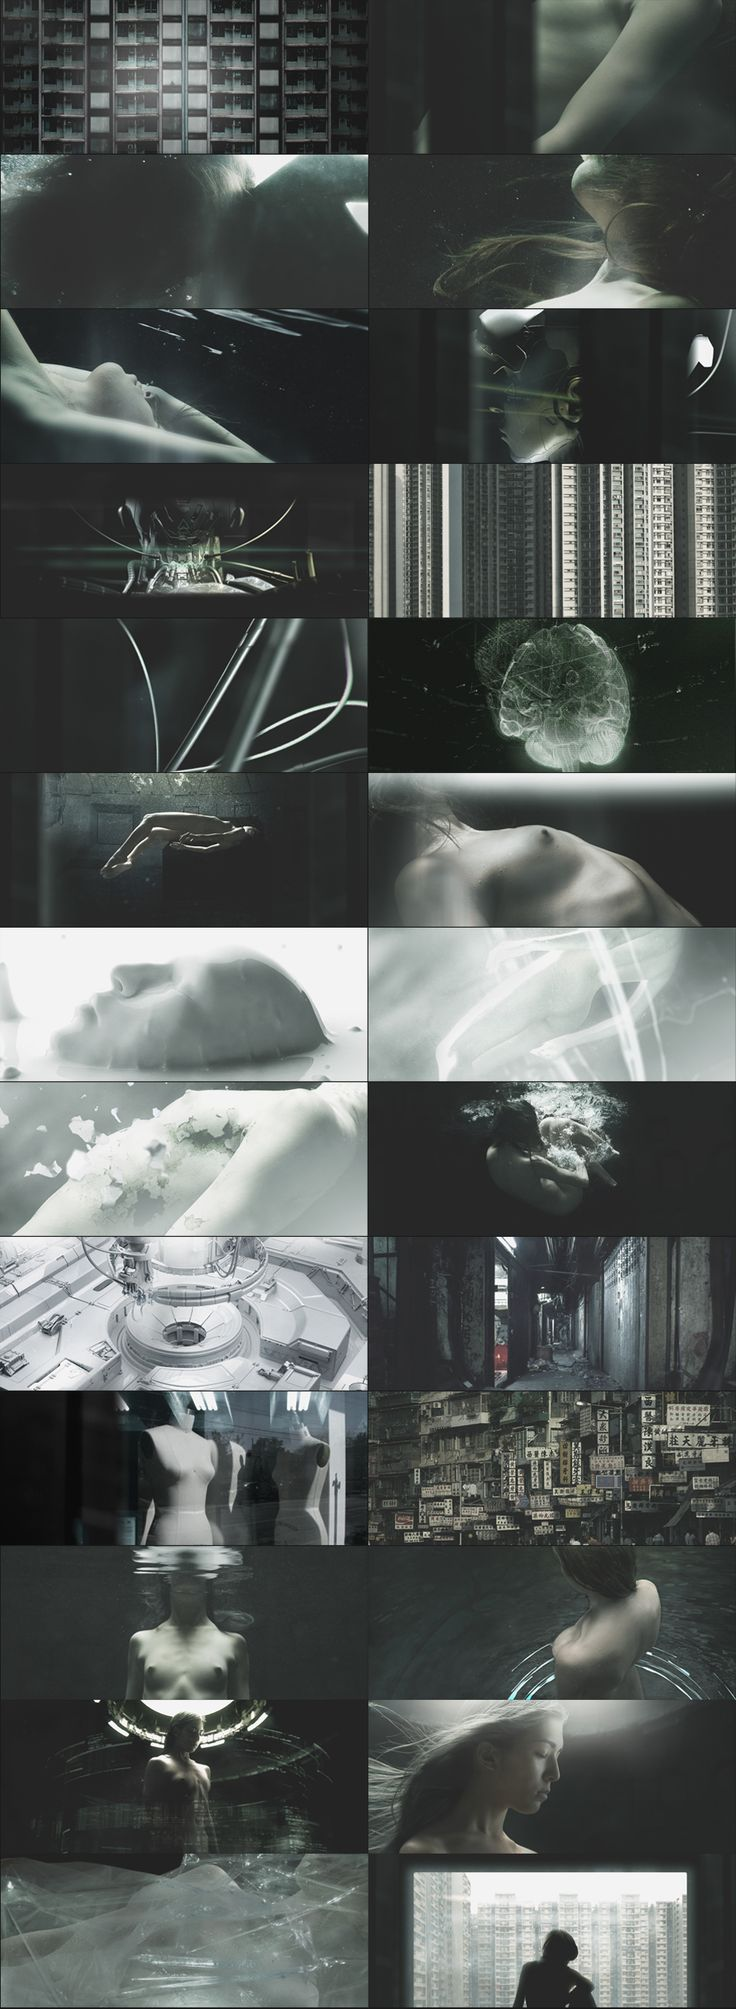 GHOST IN THE SHELL PROJECT 2501: A HOMAGE TO GHOST IN THE SHELL